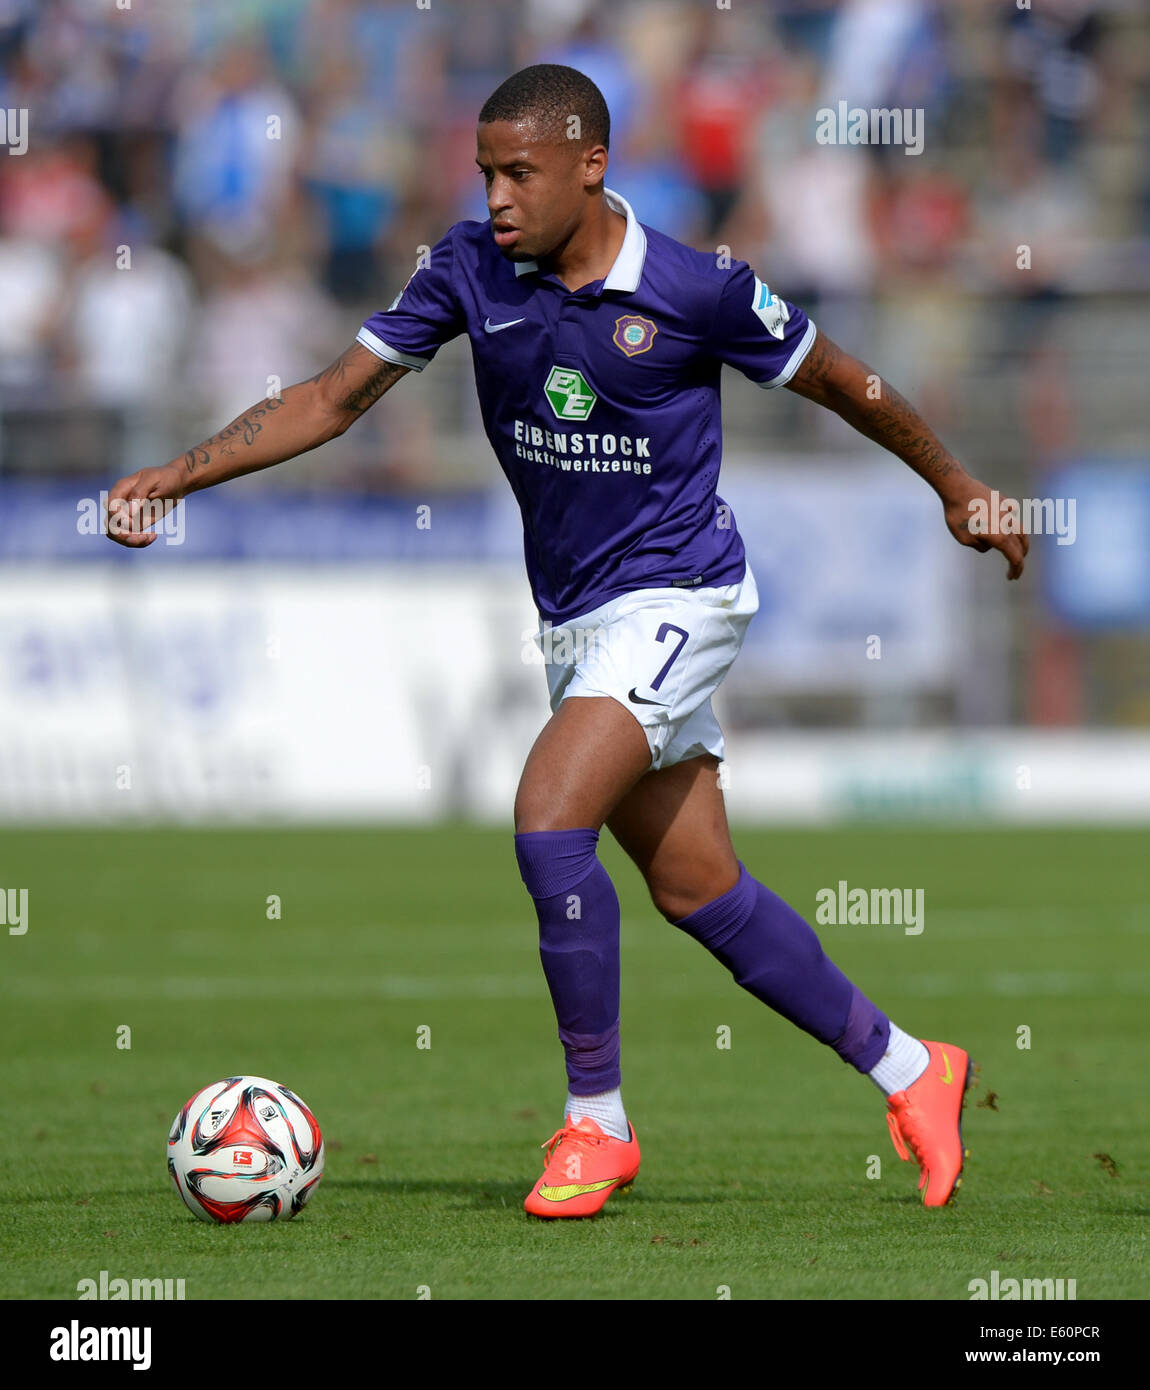 Aue, Germany. 09th Aug, 2014. Aue's Romario Kortzorg vies for the ball during the German second league soccer - Stock Image